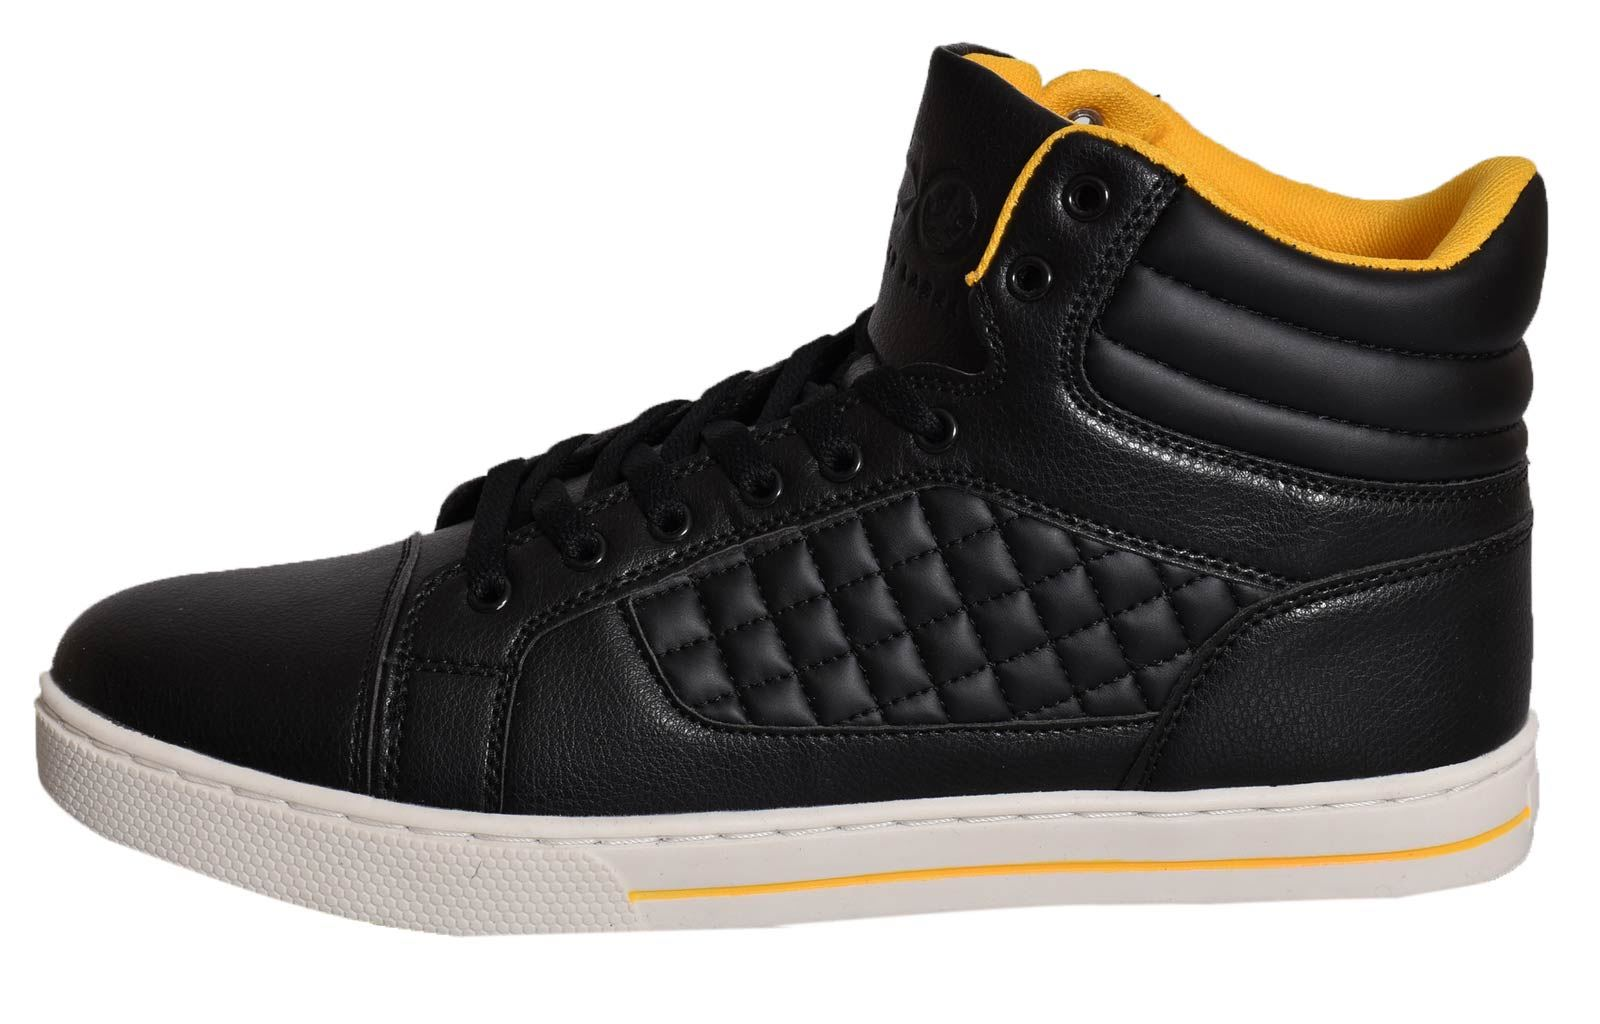 Mens-Trainers-Lace-up-Crosshatch-High-Tops-Ankle-Padded-Shoes-New-UK-Sizes-7-12 thumbnail 4